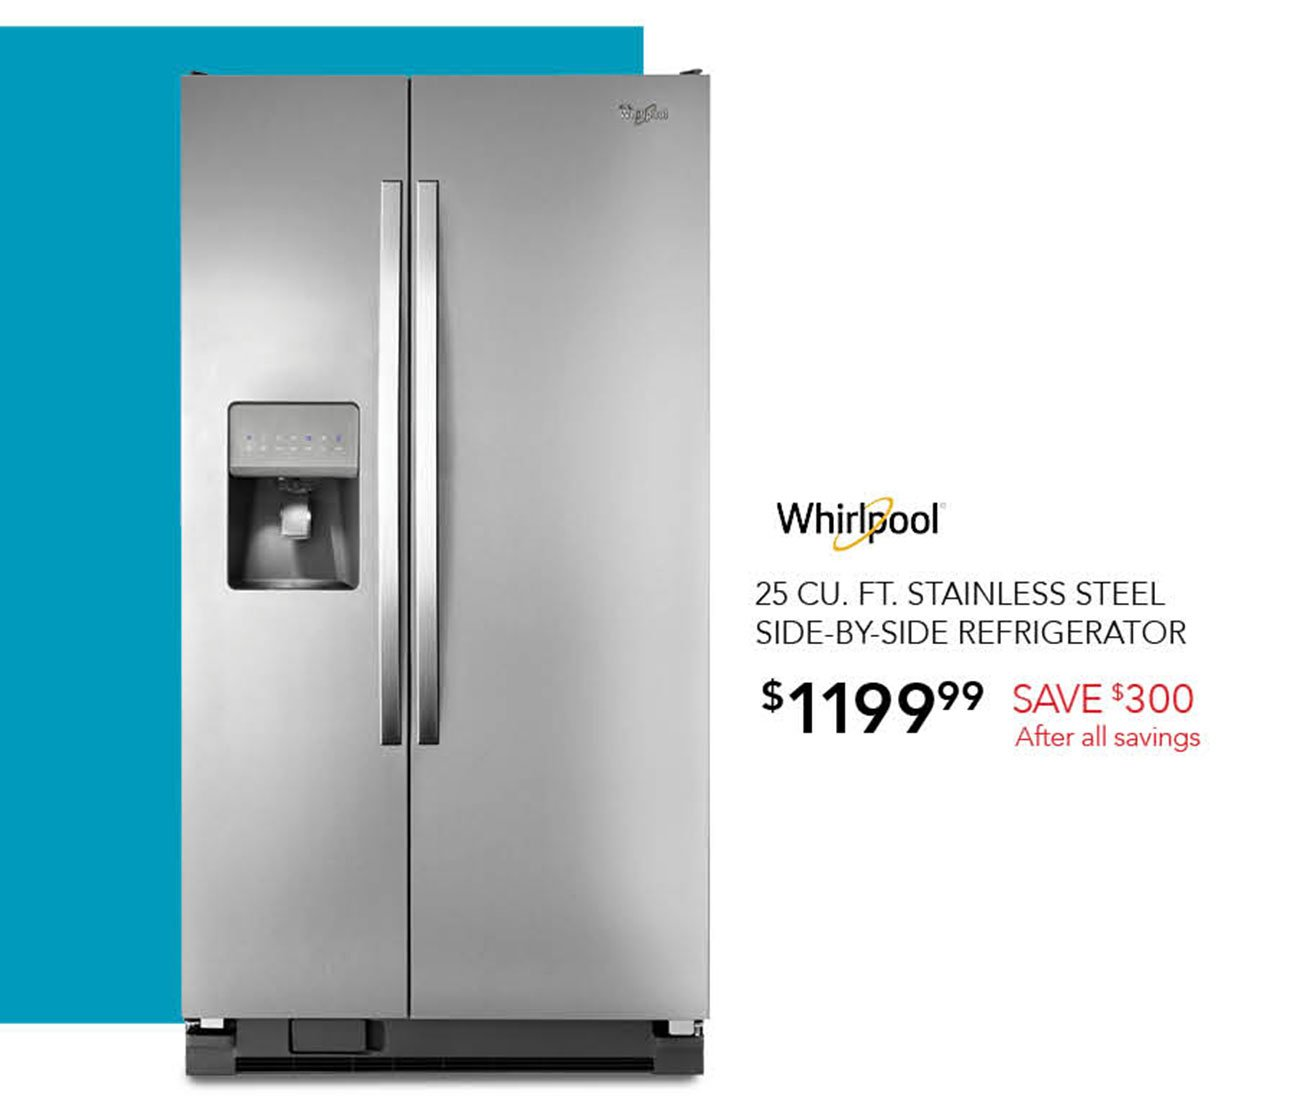 Whirlpool-side-by-side-refrigerator